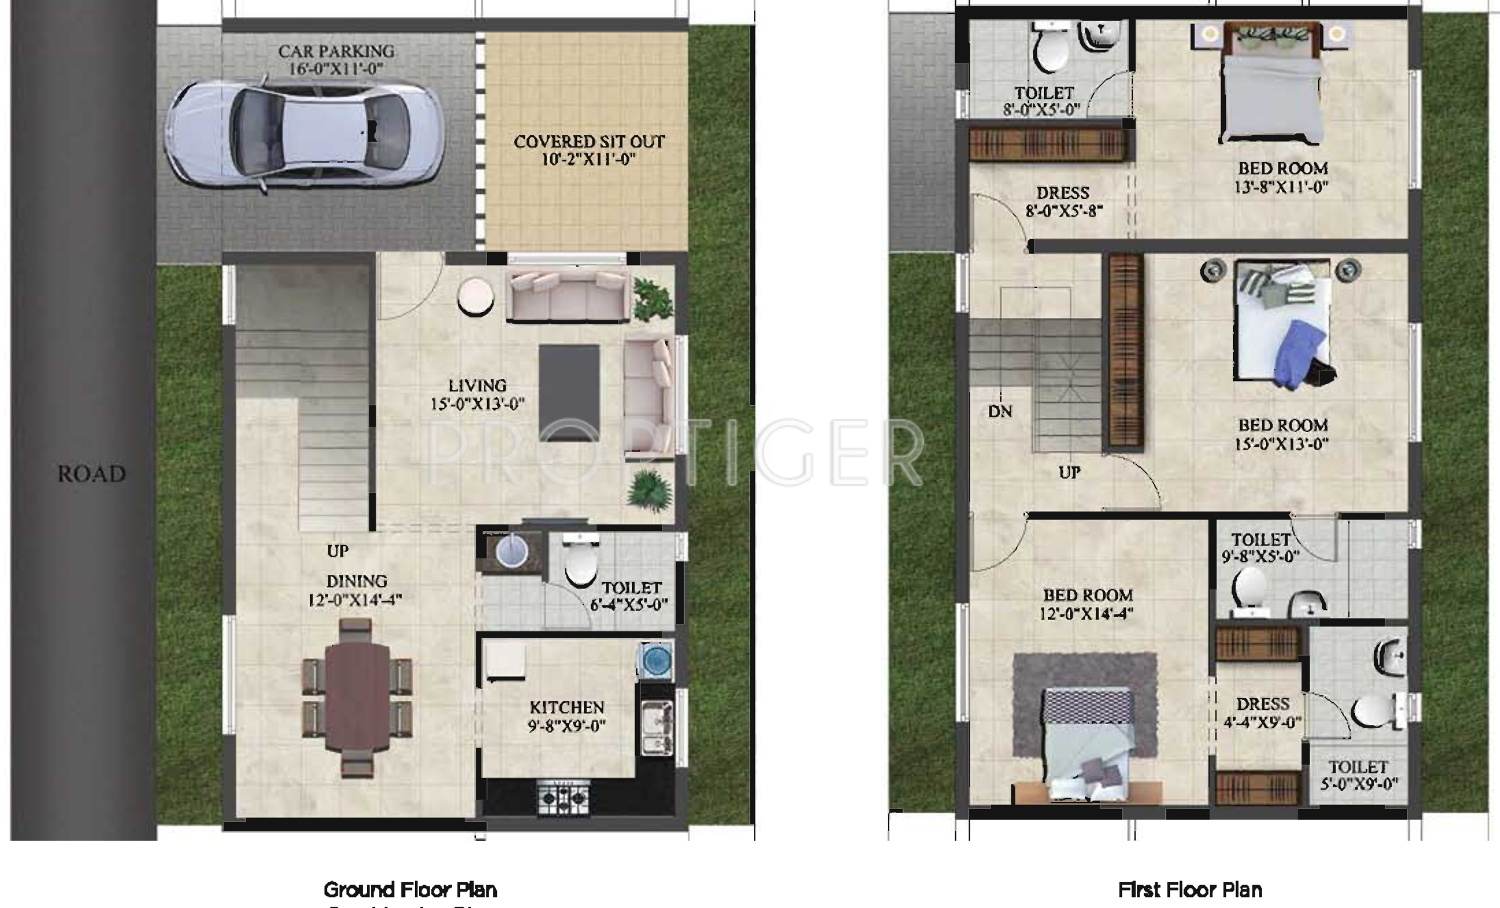 100 duplex row house floor plans 53 home with open for Row house designs small lots